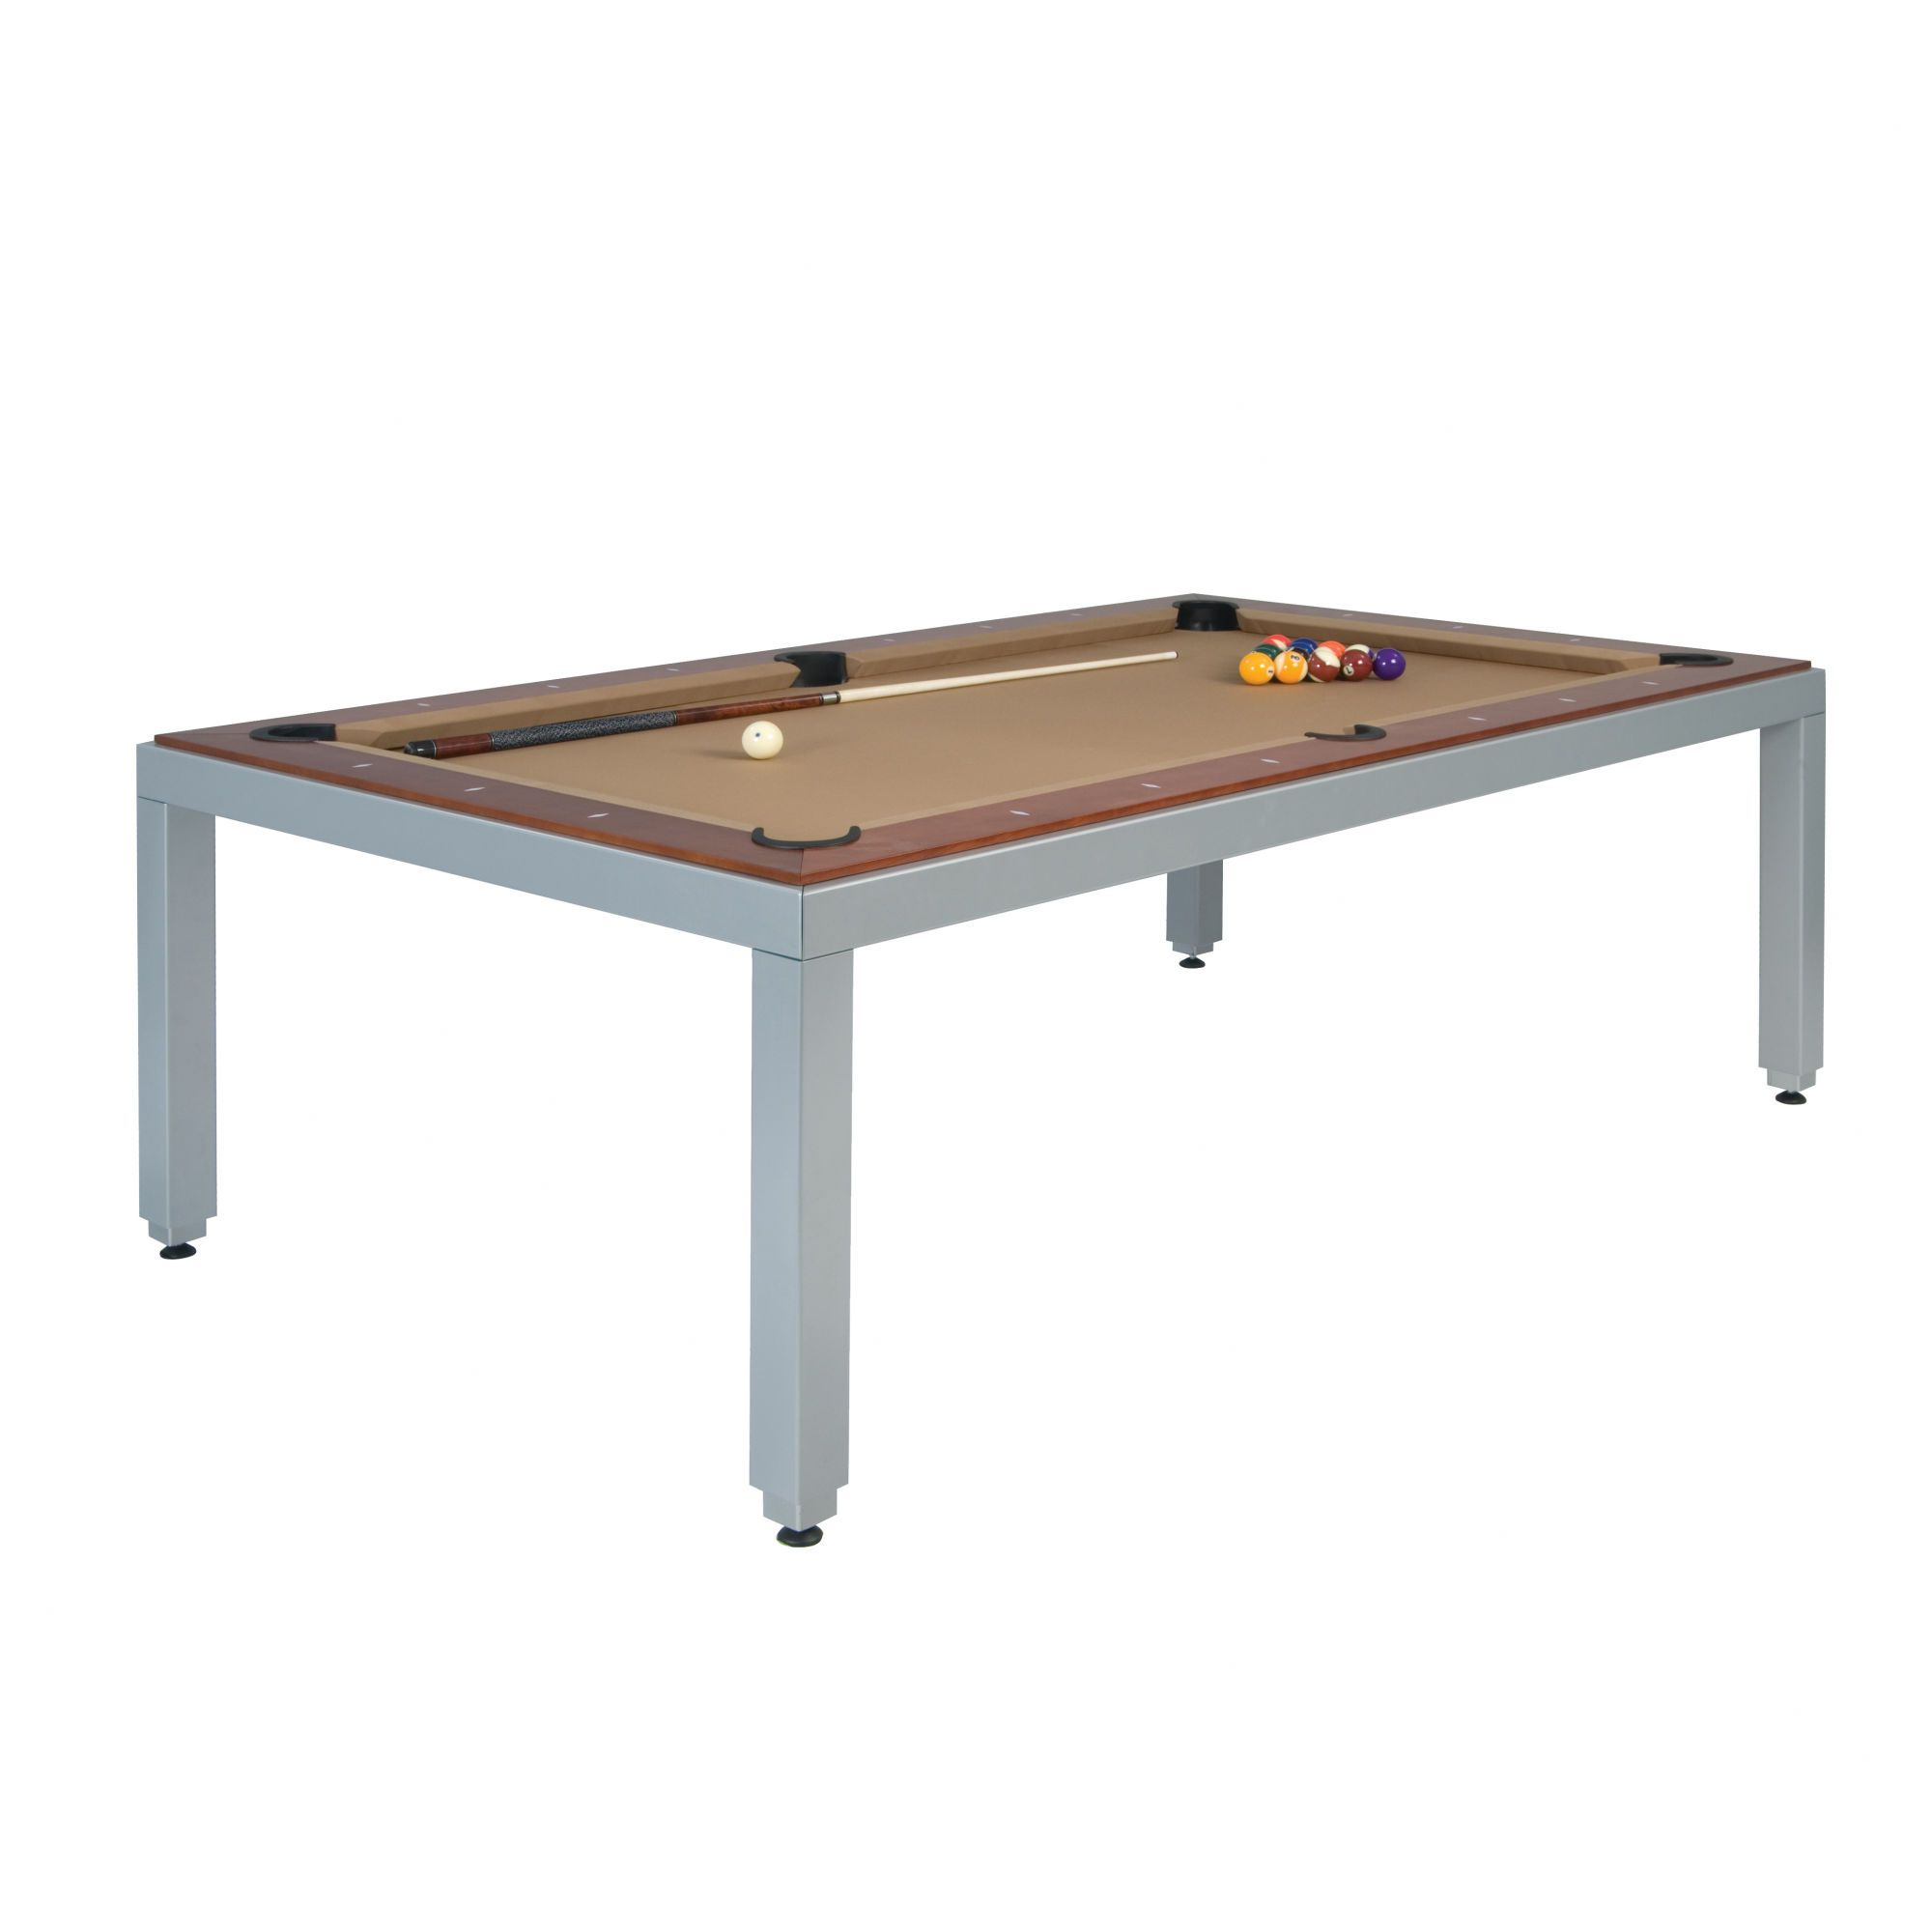 A Dining Table Which Turns Into A Pool Table Yeeeeeeeees